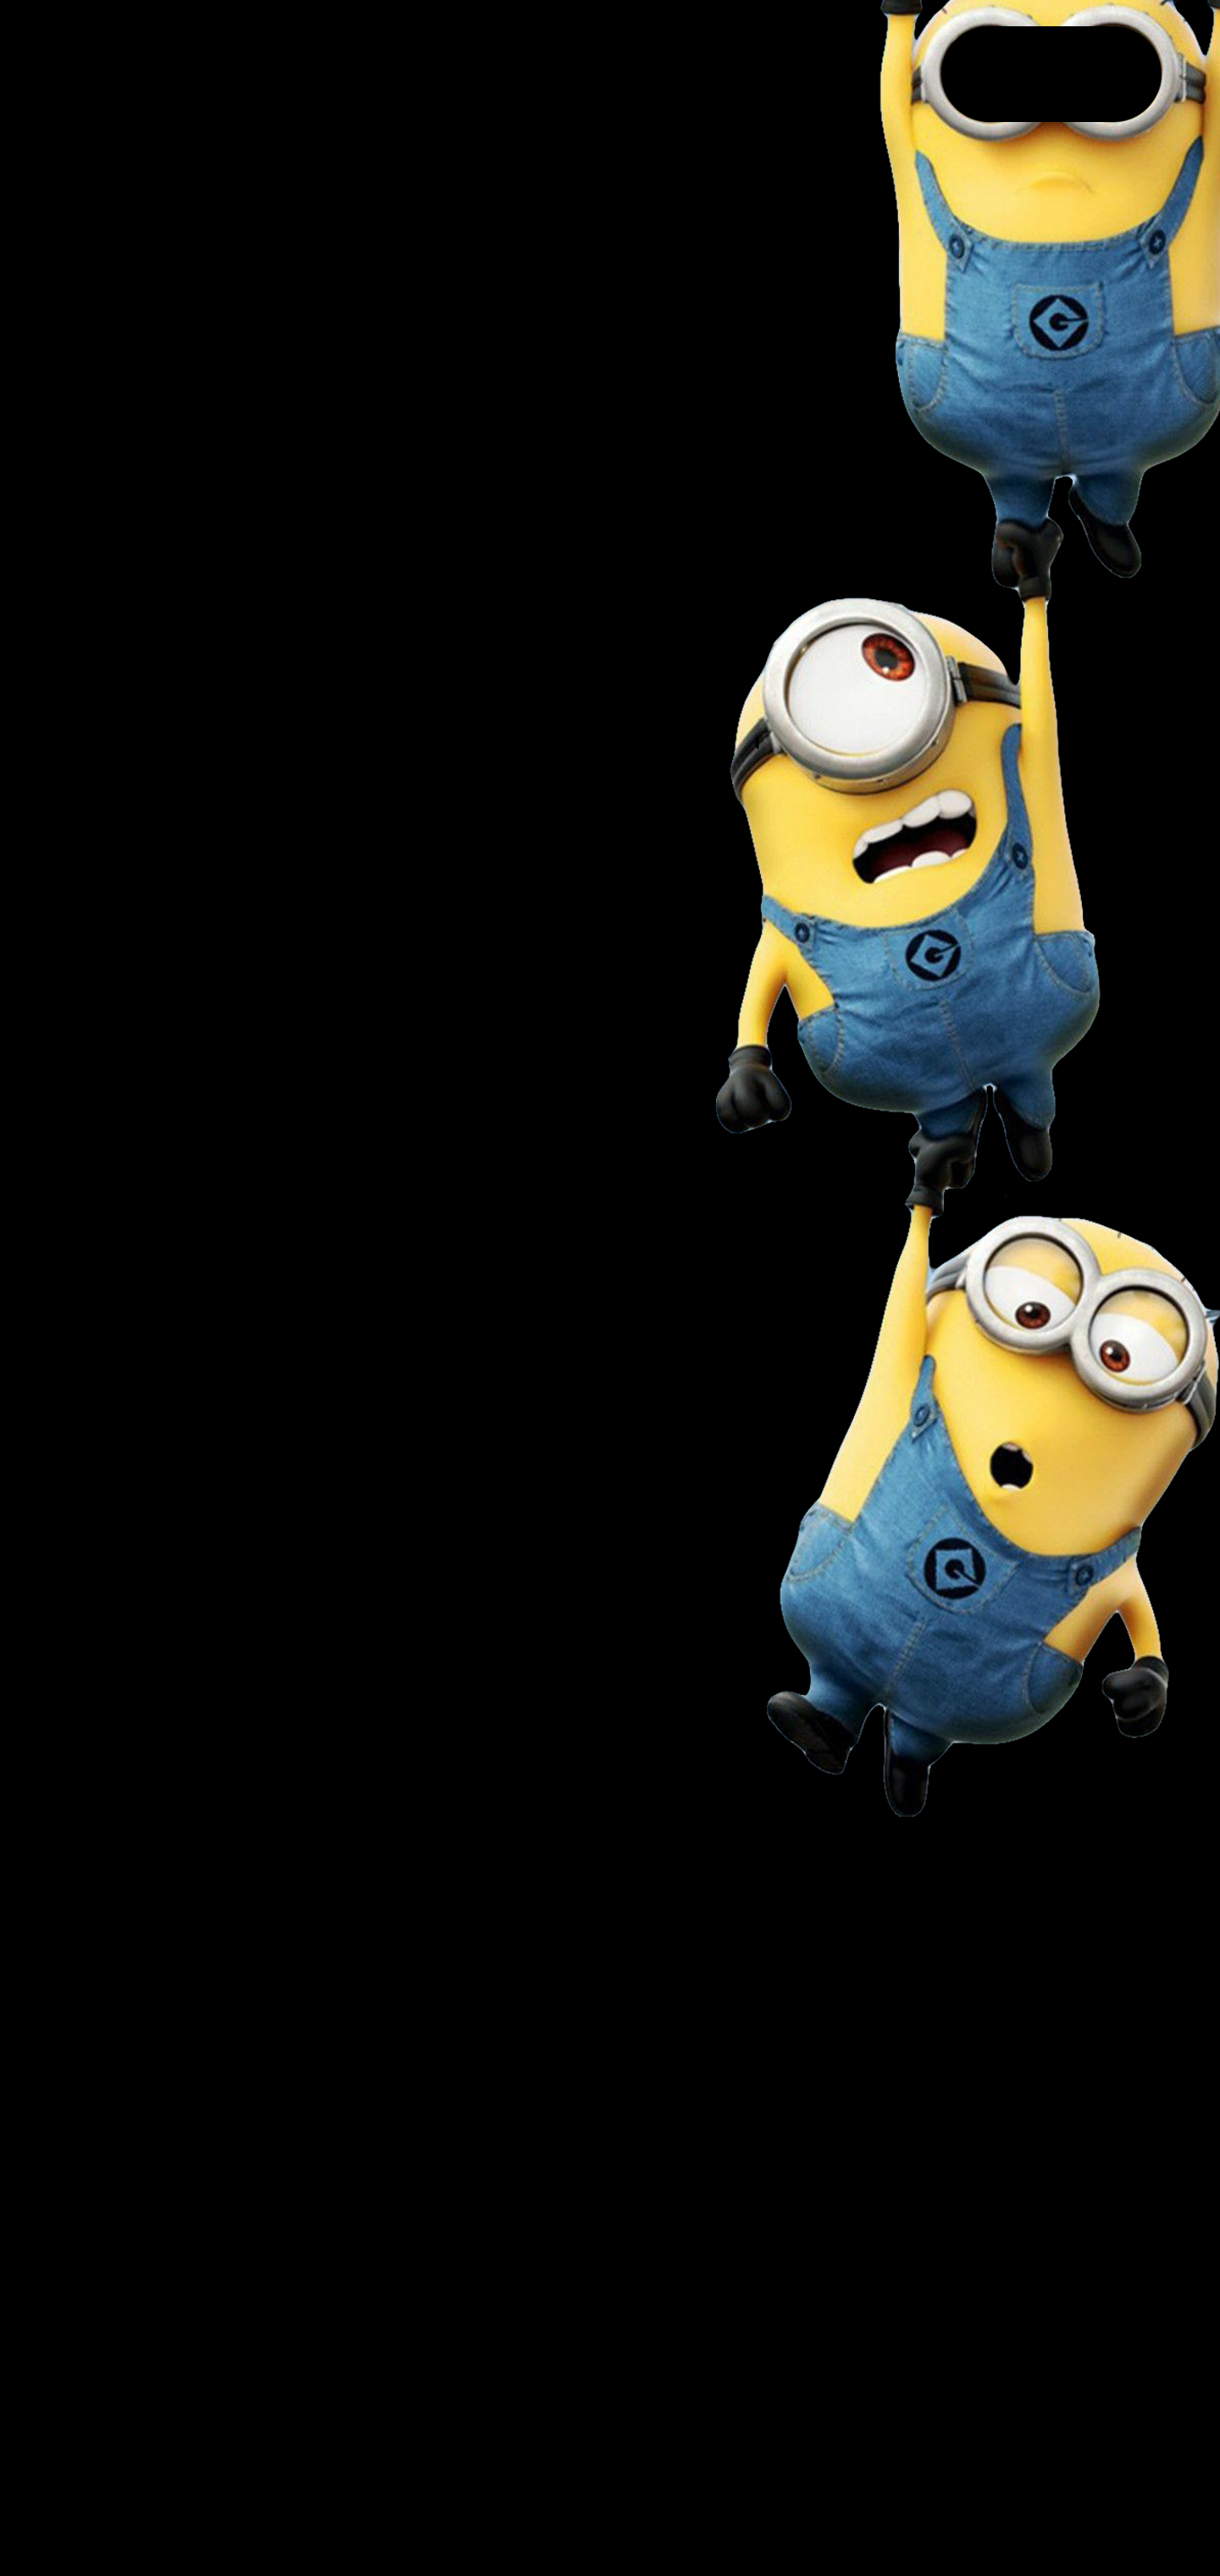 Wallpapers Minion Posted By Samantha Johnson